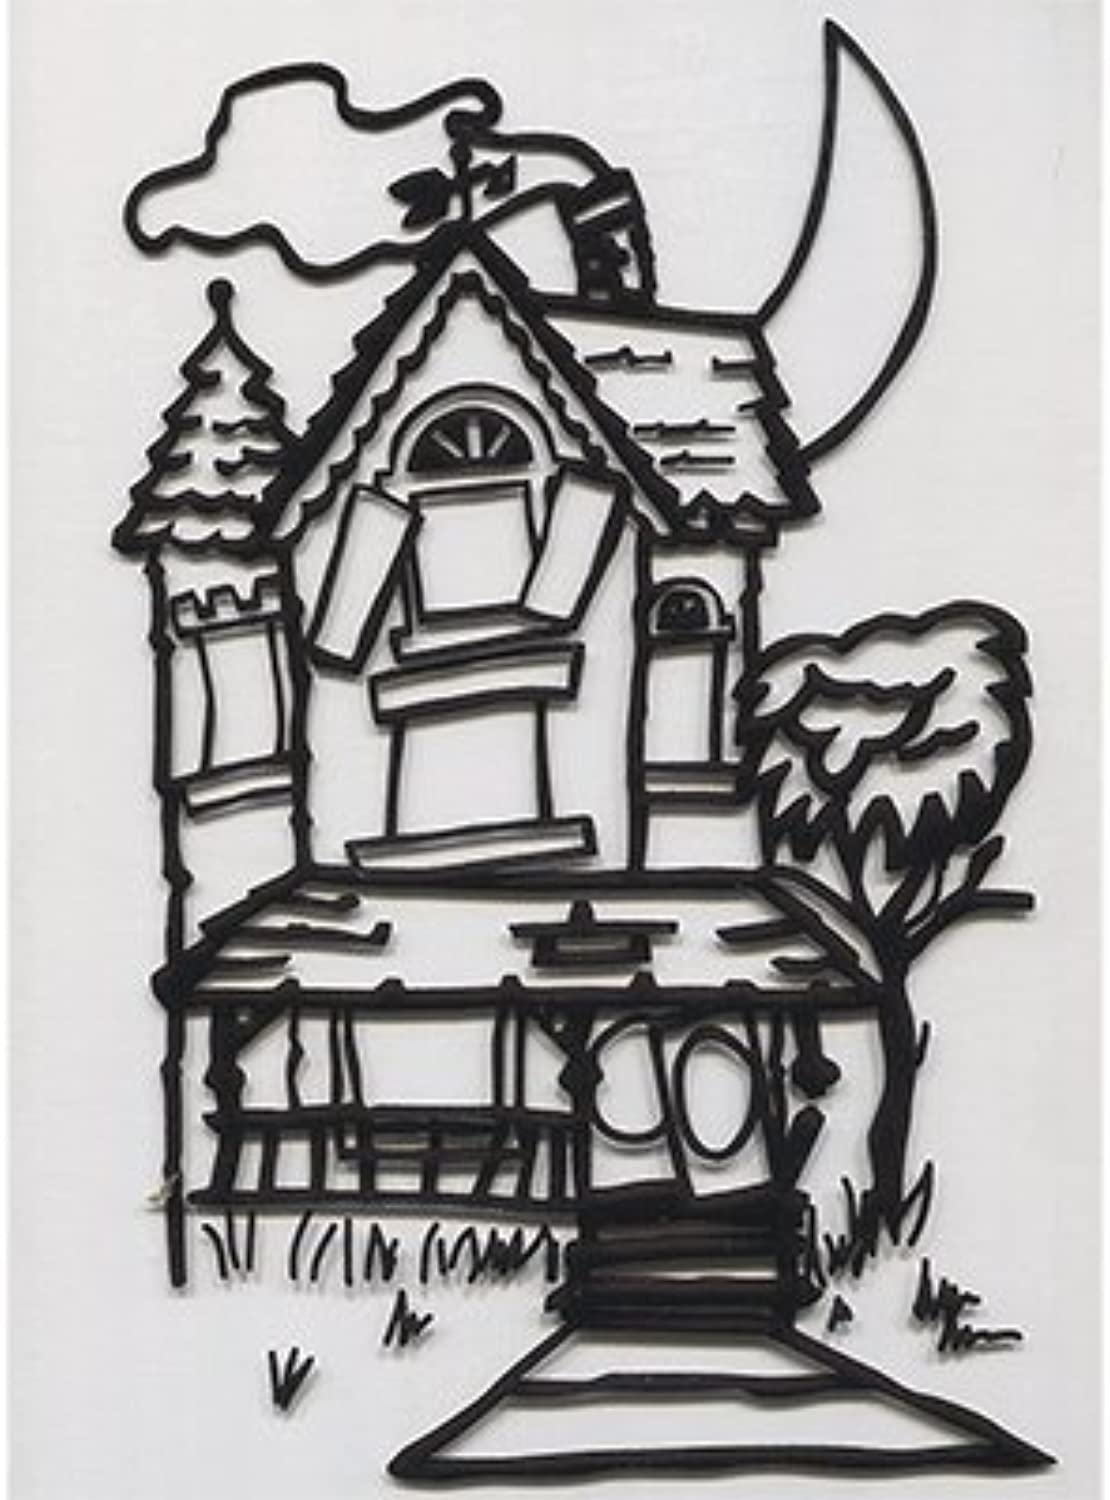 Murphys Instant Art Insert (Haunted House) by Ickle Pickle Magic - Trick B00HYZS3LW Professionelles Design    |  Neuer Markt